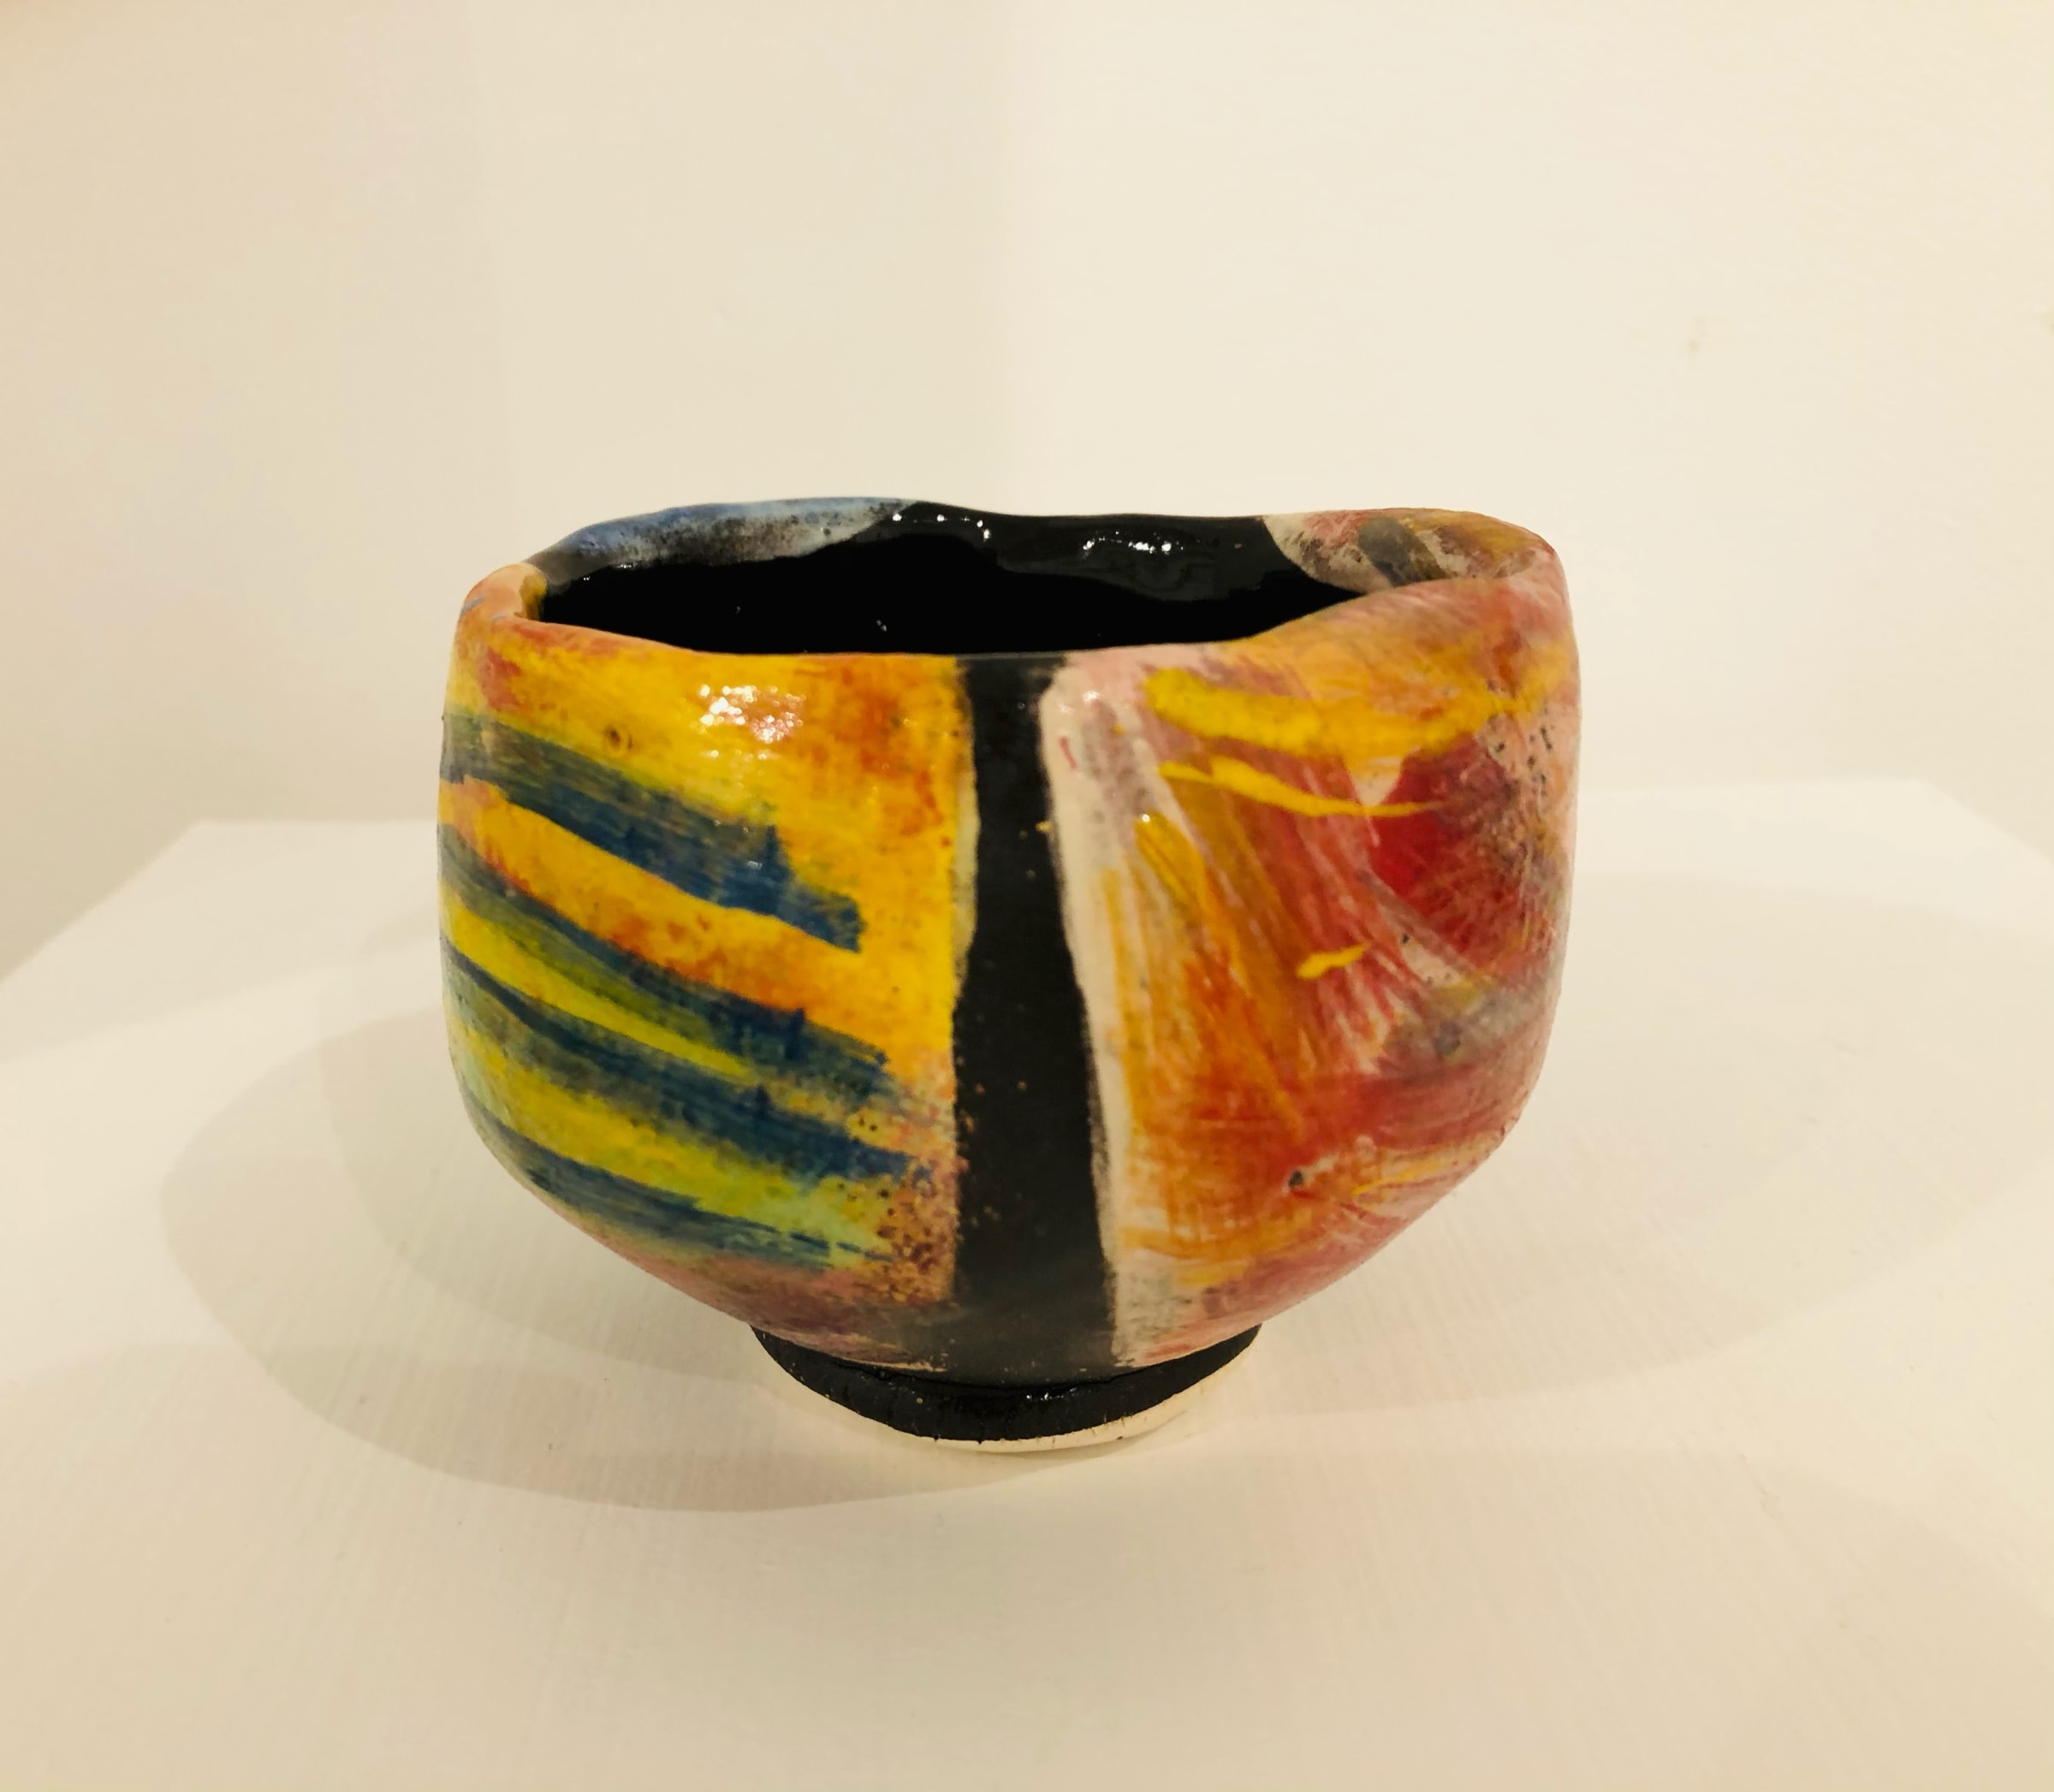 """<span class=""""link fancybox-details-link""""><a href=""""/artists/100-john-pollex/works/7421-john-pollex-tea-bowl-hand-built-2020/"""">View Detail Page</a></span><div class=""""artist""""><strong>John Pollex</strong></div> <div class=""""title""""><em>Tea bowl (hand built)</em>, 2020</div> <div class=""""signed_and_dated"""">impressed with the artist's seal mark 'JP'</div> <div class=""""medium"""">white earthenware decorated with coloured slips</div> <div class=""""dimensions"""">height. 8.5 cm x diameter. 10 cm</div><div class=""""price"""">£88.00</div><div class=""""copyright_line"""">Copyright The Artist</div>"""